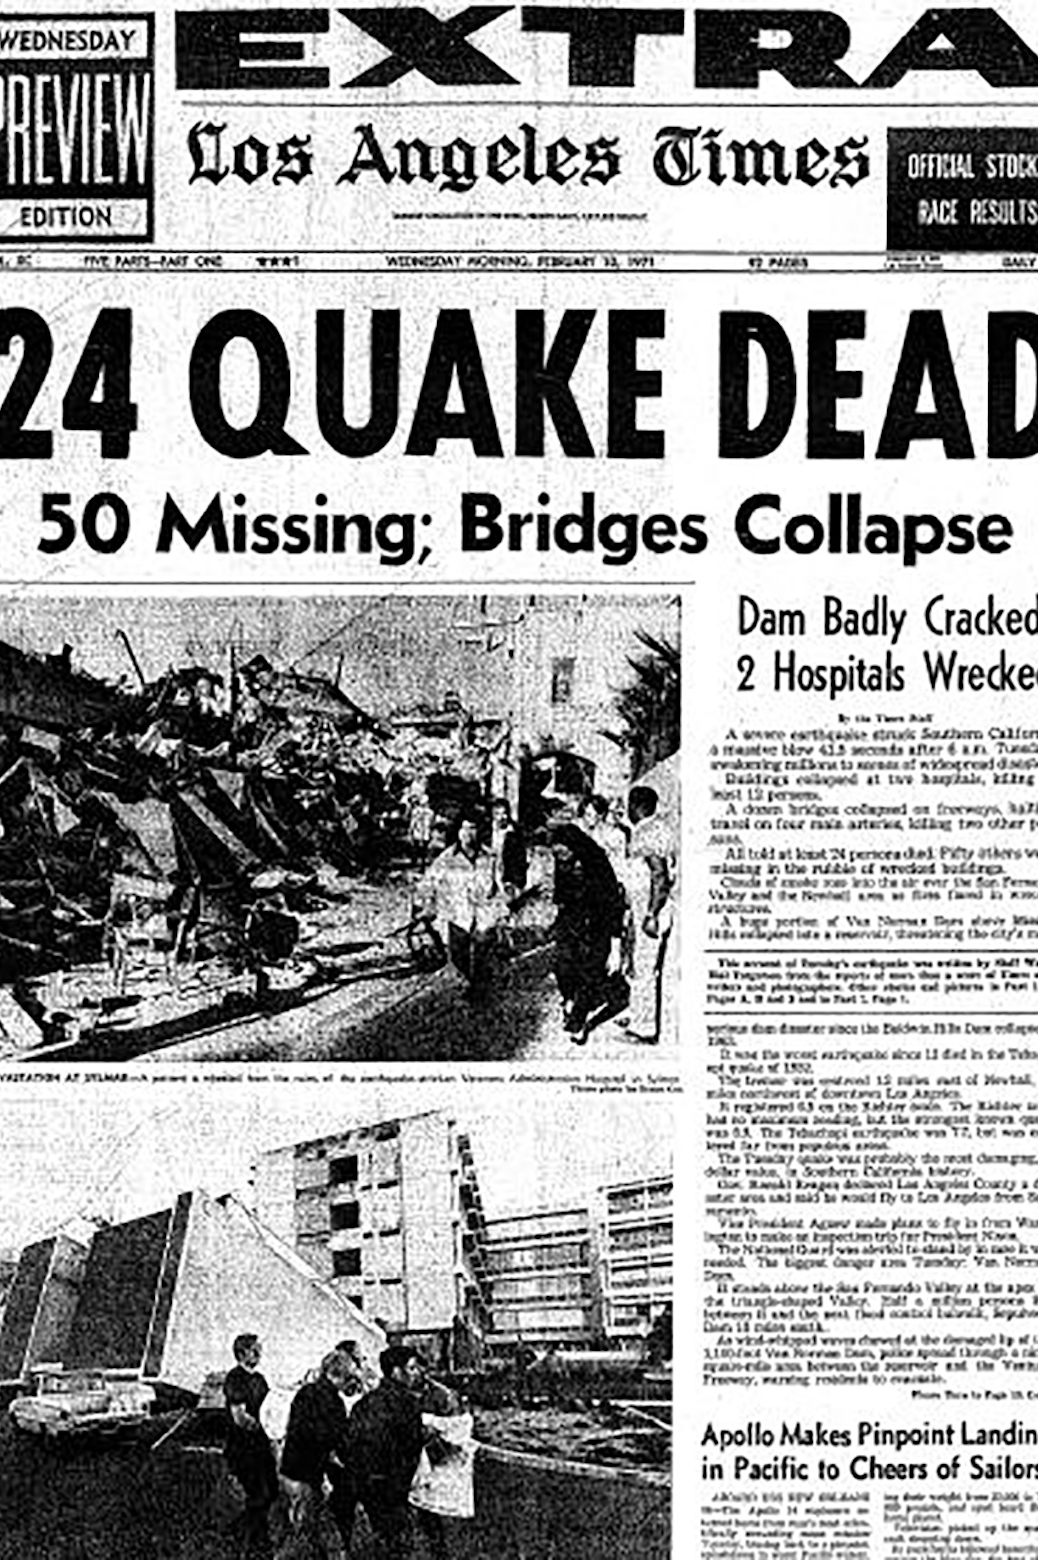 Cover of the LA times after the Sylmar earthquake